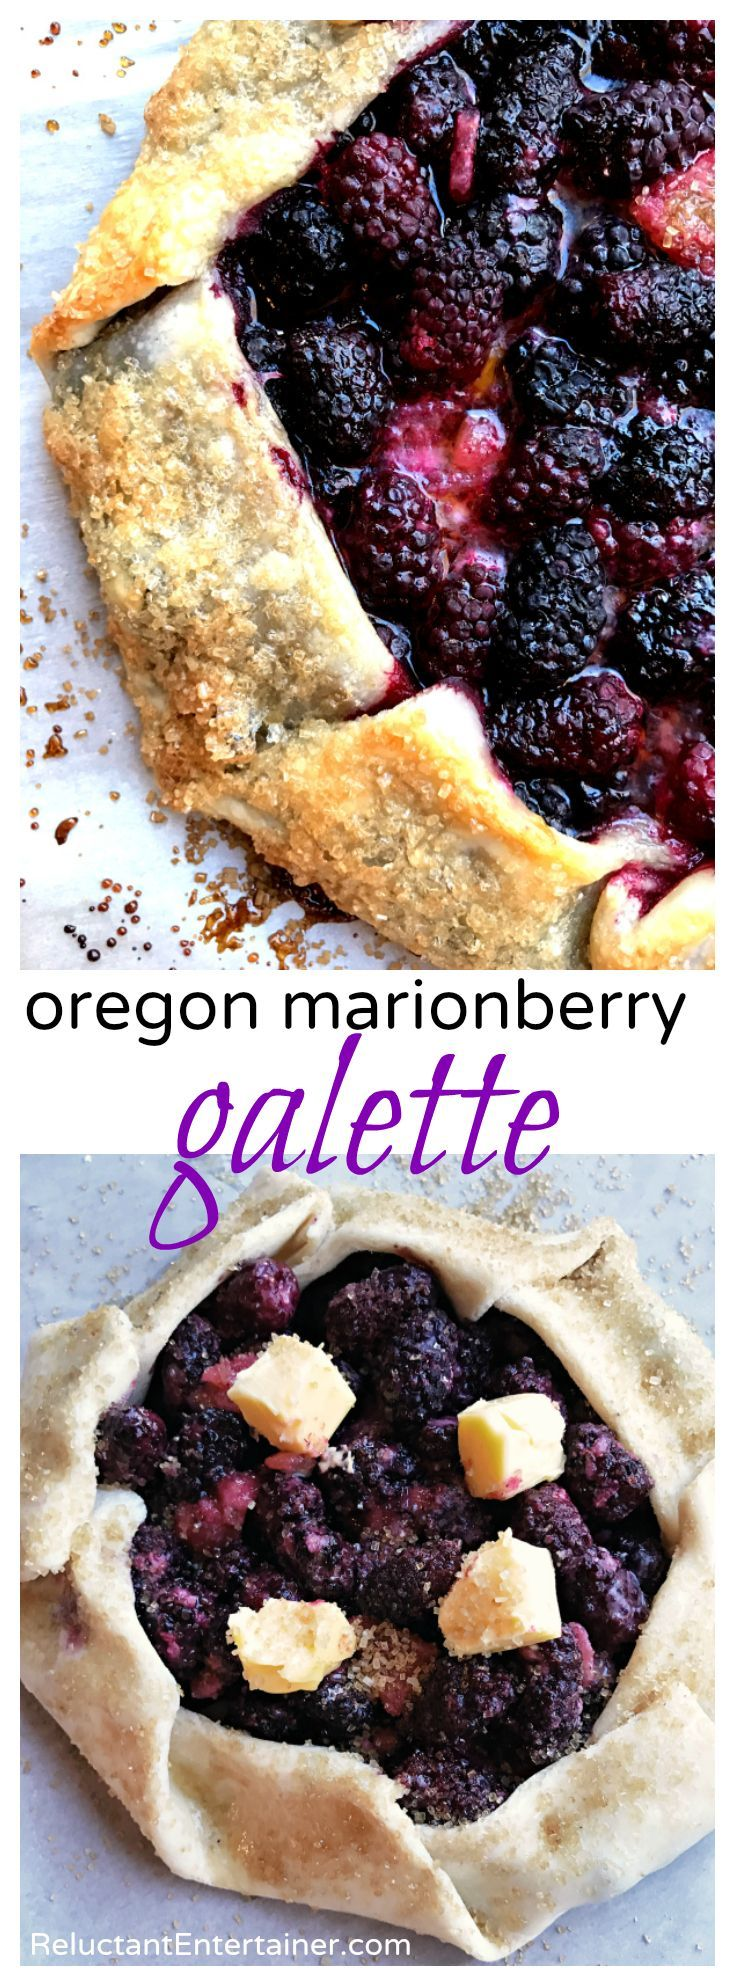 Making a galette is quick, and it doesn't have to be perfect. They're rustic, open faced, and pretty, too. If pies intimidate you, then a galette just may be for you! Oregon Marionberry Galette